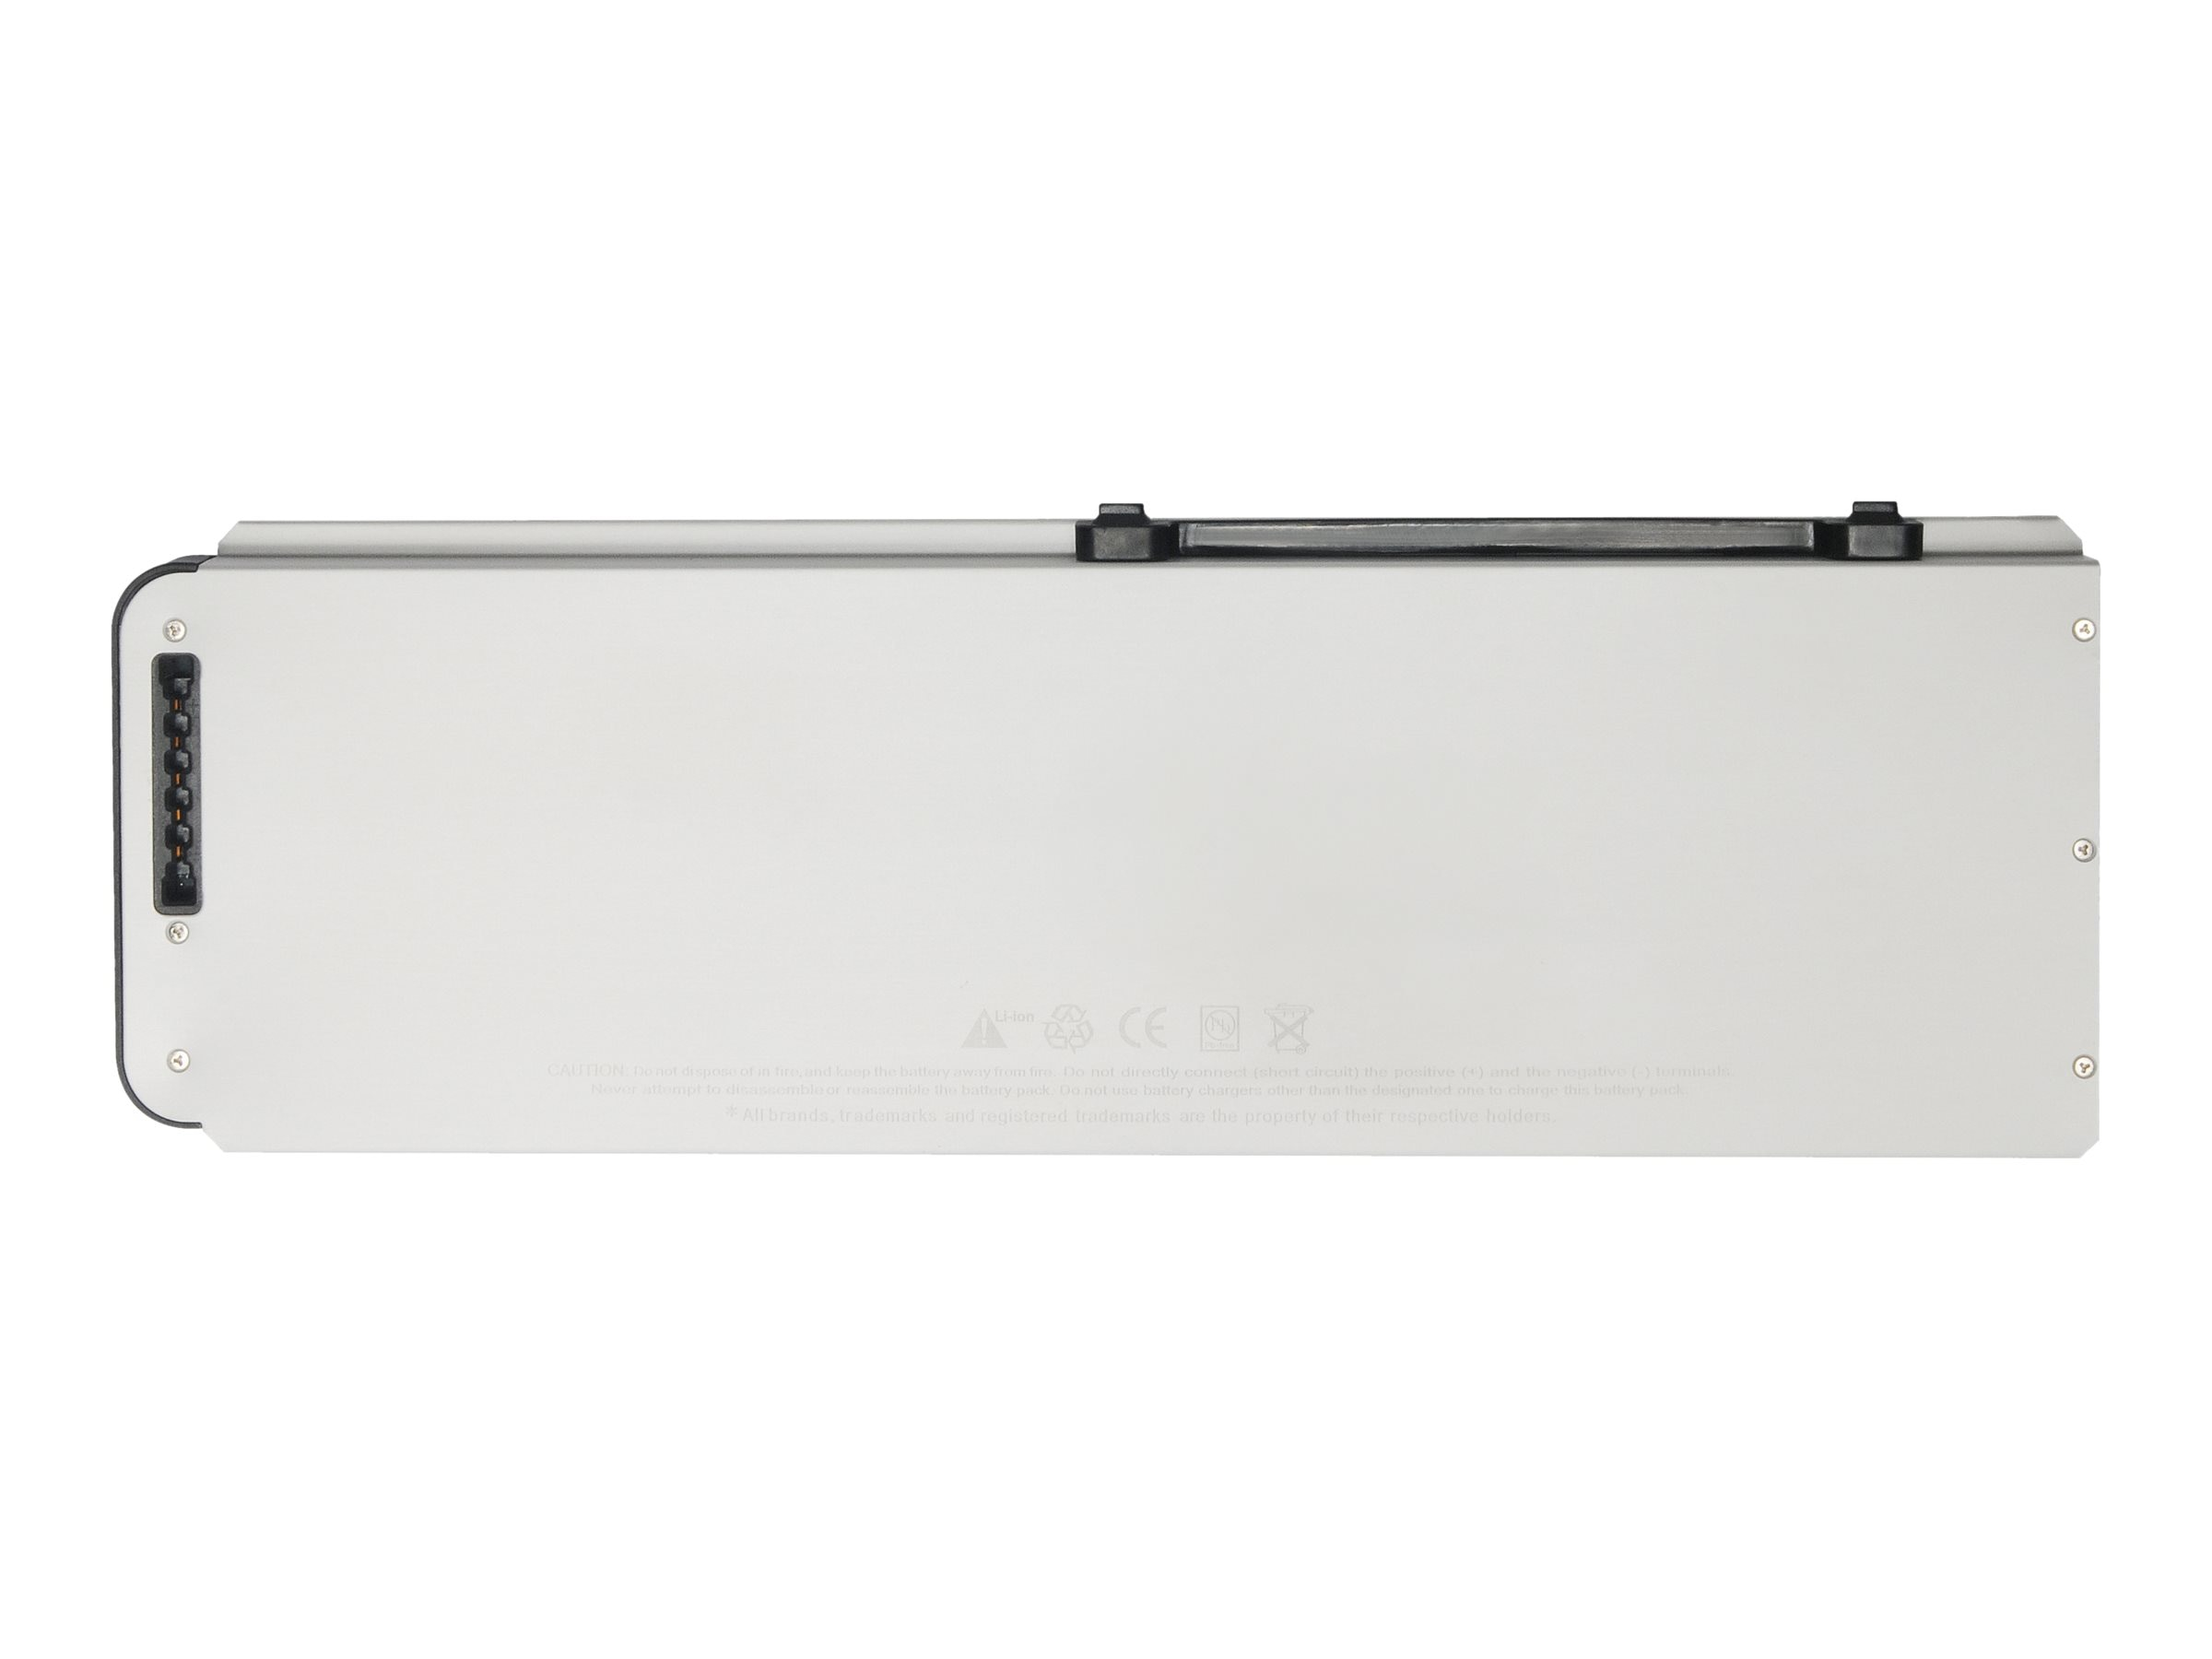 BTI 3-Cell Battery MacBook Pro 15 15.4 Aluminum MB470J A MB470LL A, A1281-BTI